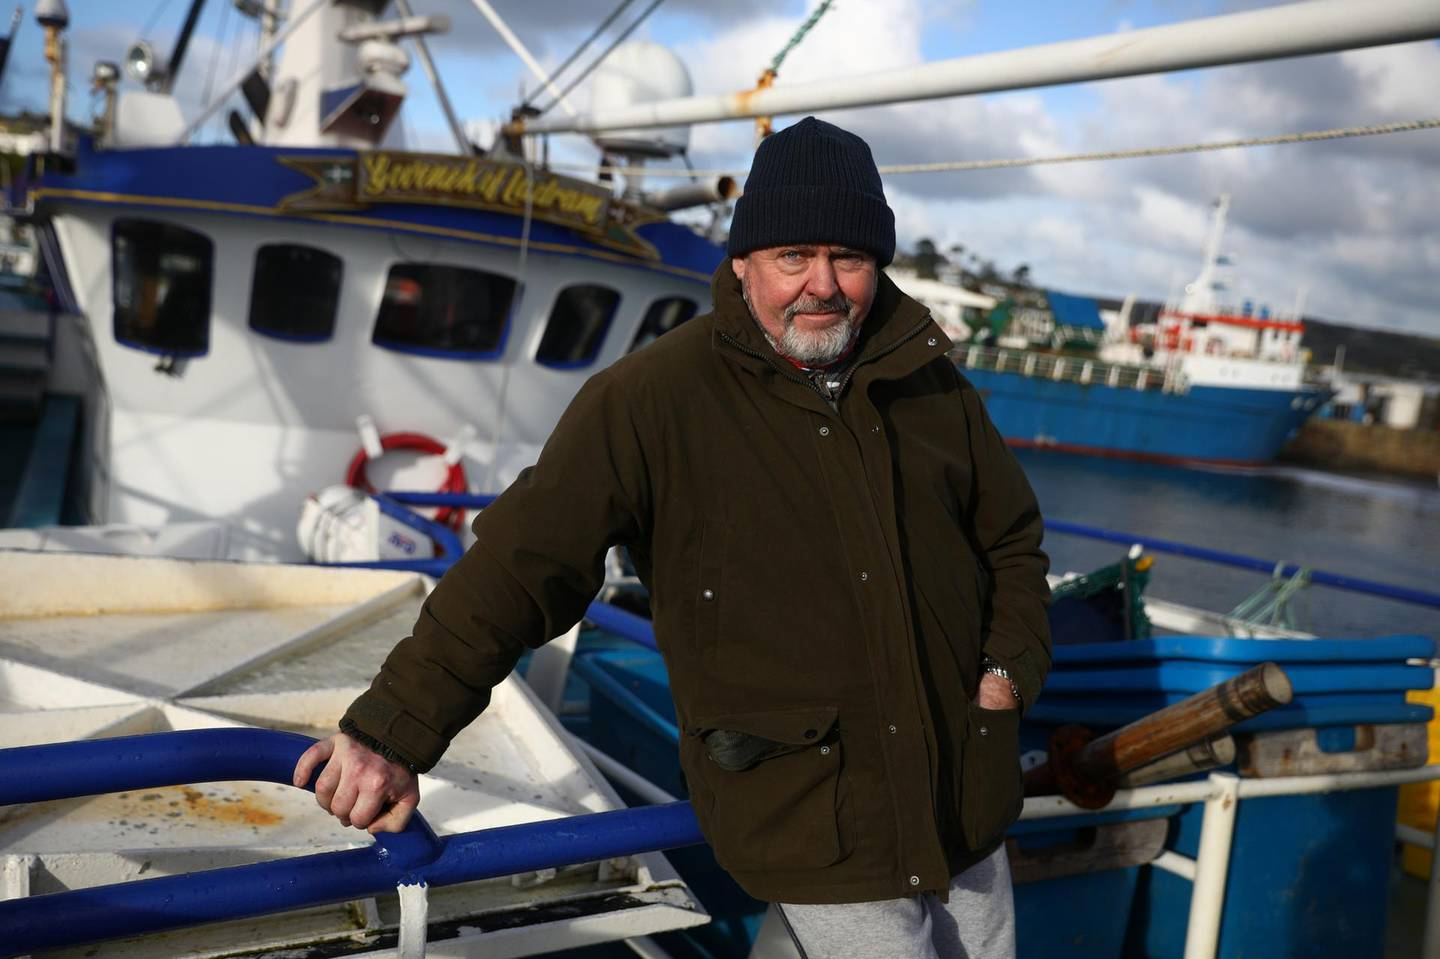 Phil Mitchell, the skipper of Govenek of Ladram fishing boat, poses for a portrait in Penzance Harbour, Britain, December 29, 2020. Picture taken December 29, 2020. REUTERS/Tom Nicholson